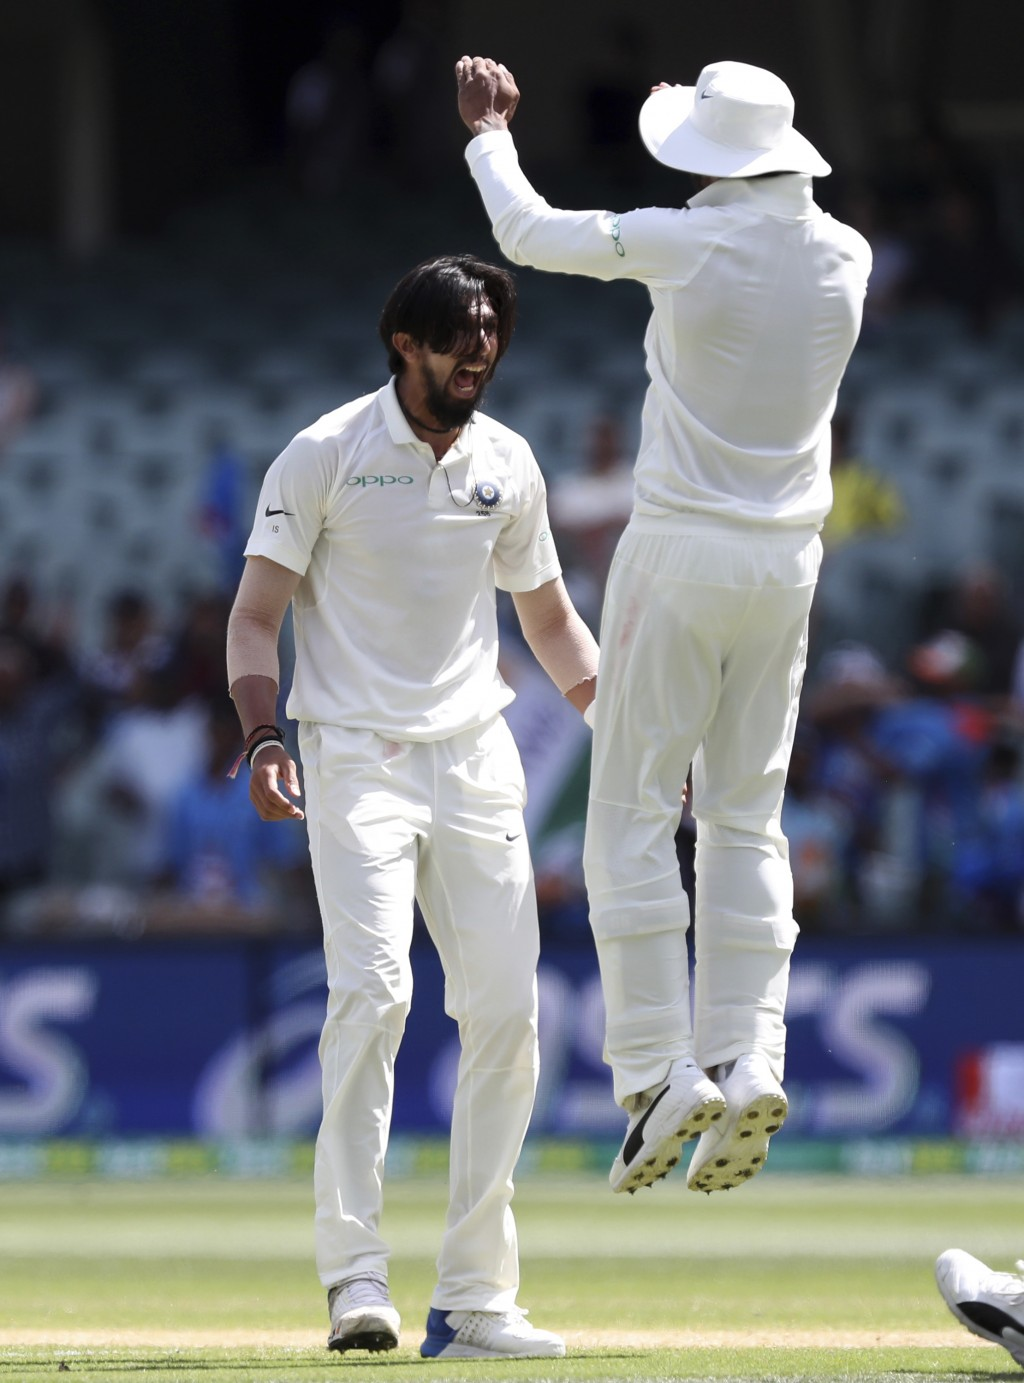 India's Ishant Sharma, left, celebrates with a teammate after taking the wicket of Australia's Travis Head on the final day of the first cricket test